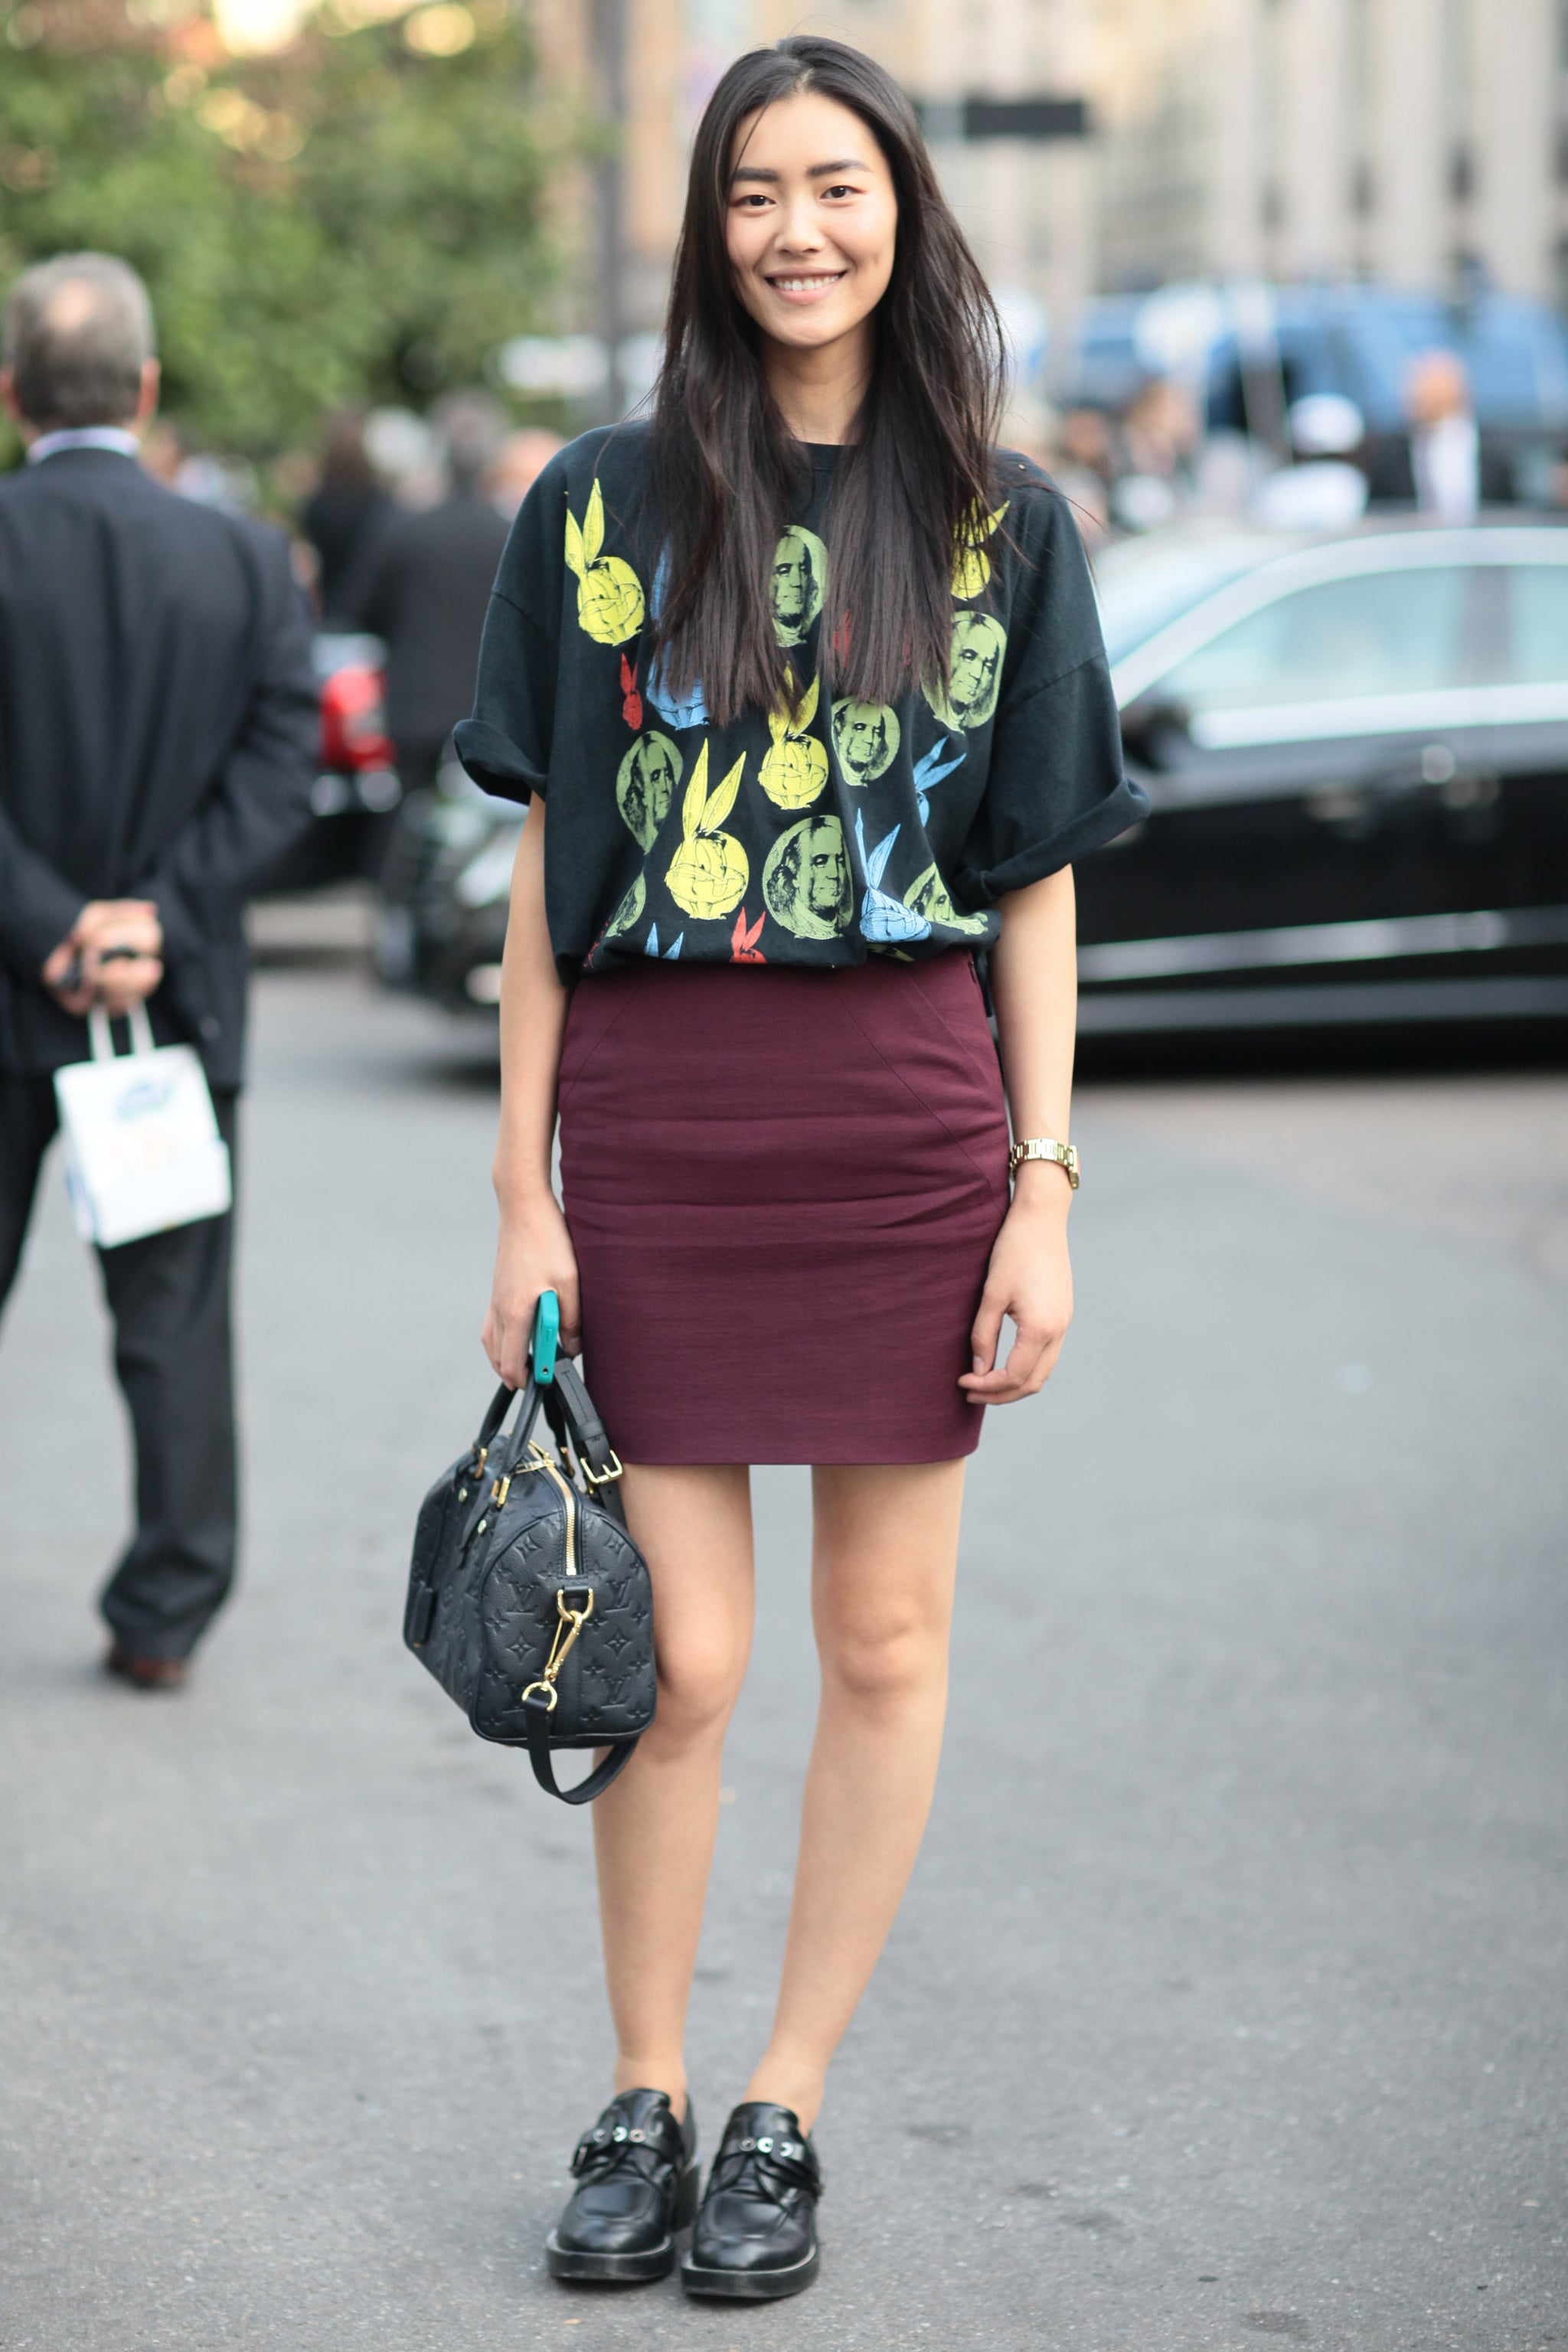 Dress Up A Cheeky Print With A Plum Hued Pencil Skirt And Patent Street Styled Over 180 Snaps